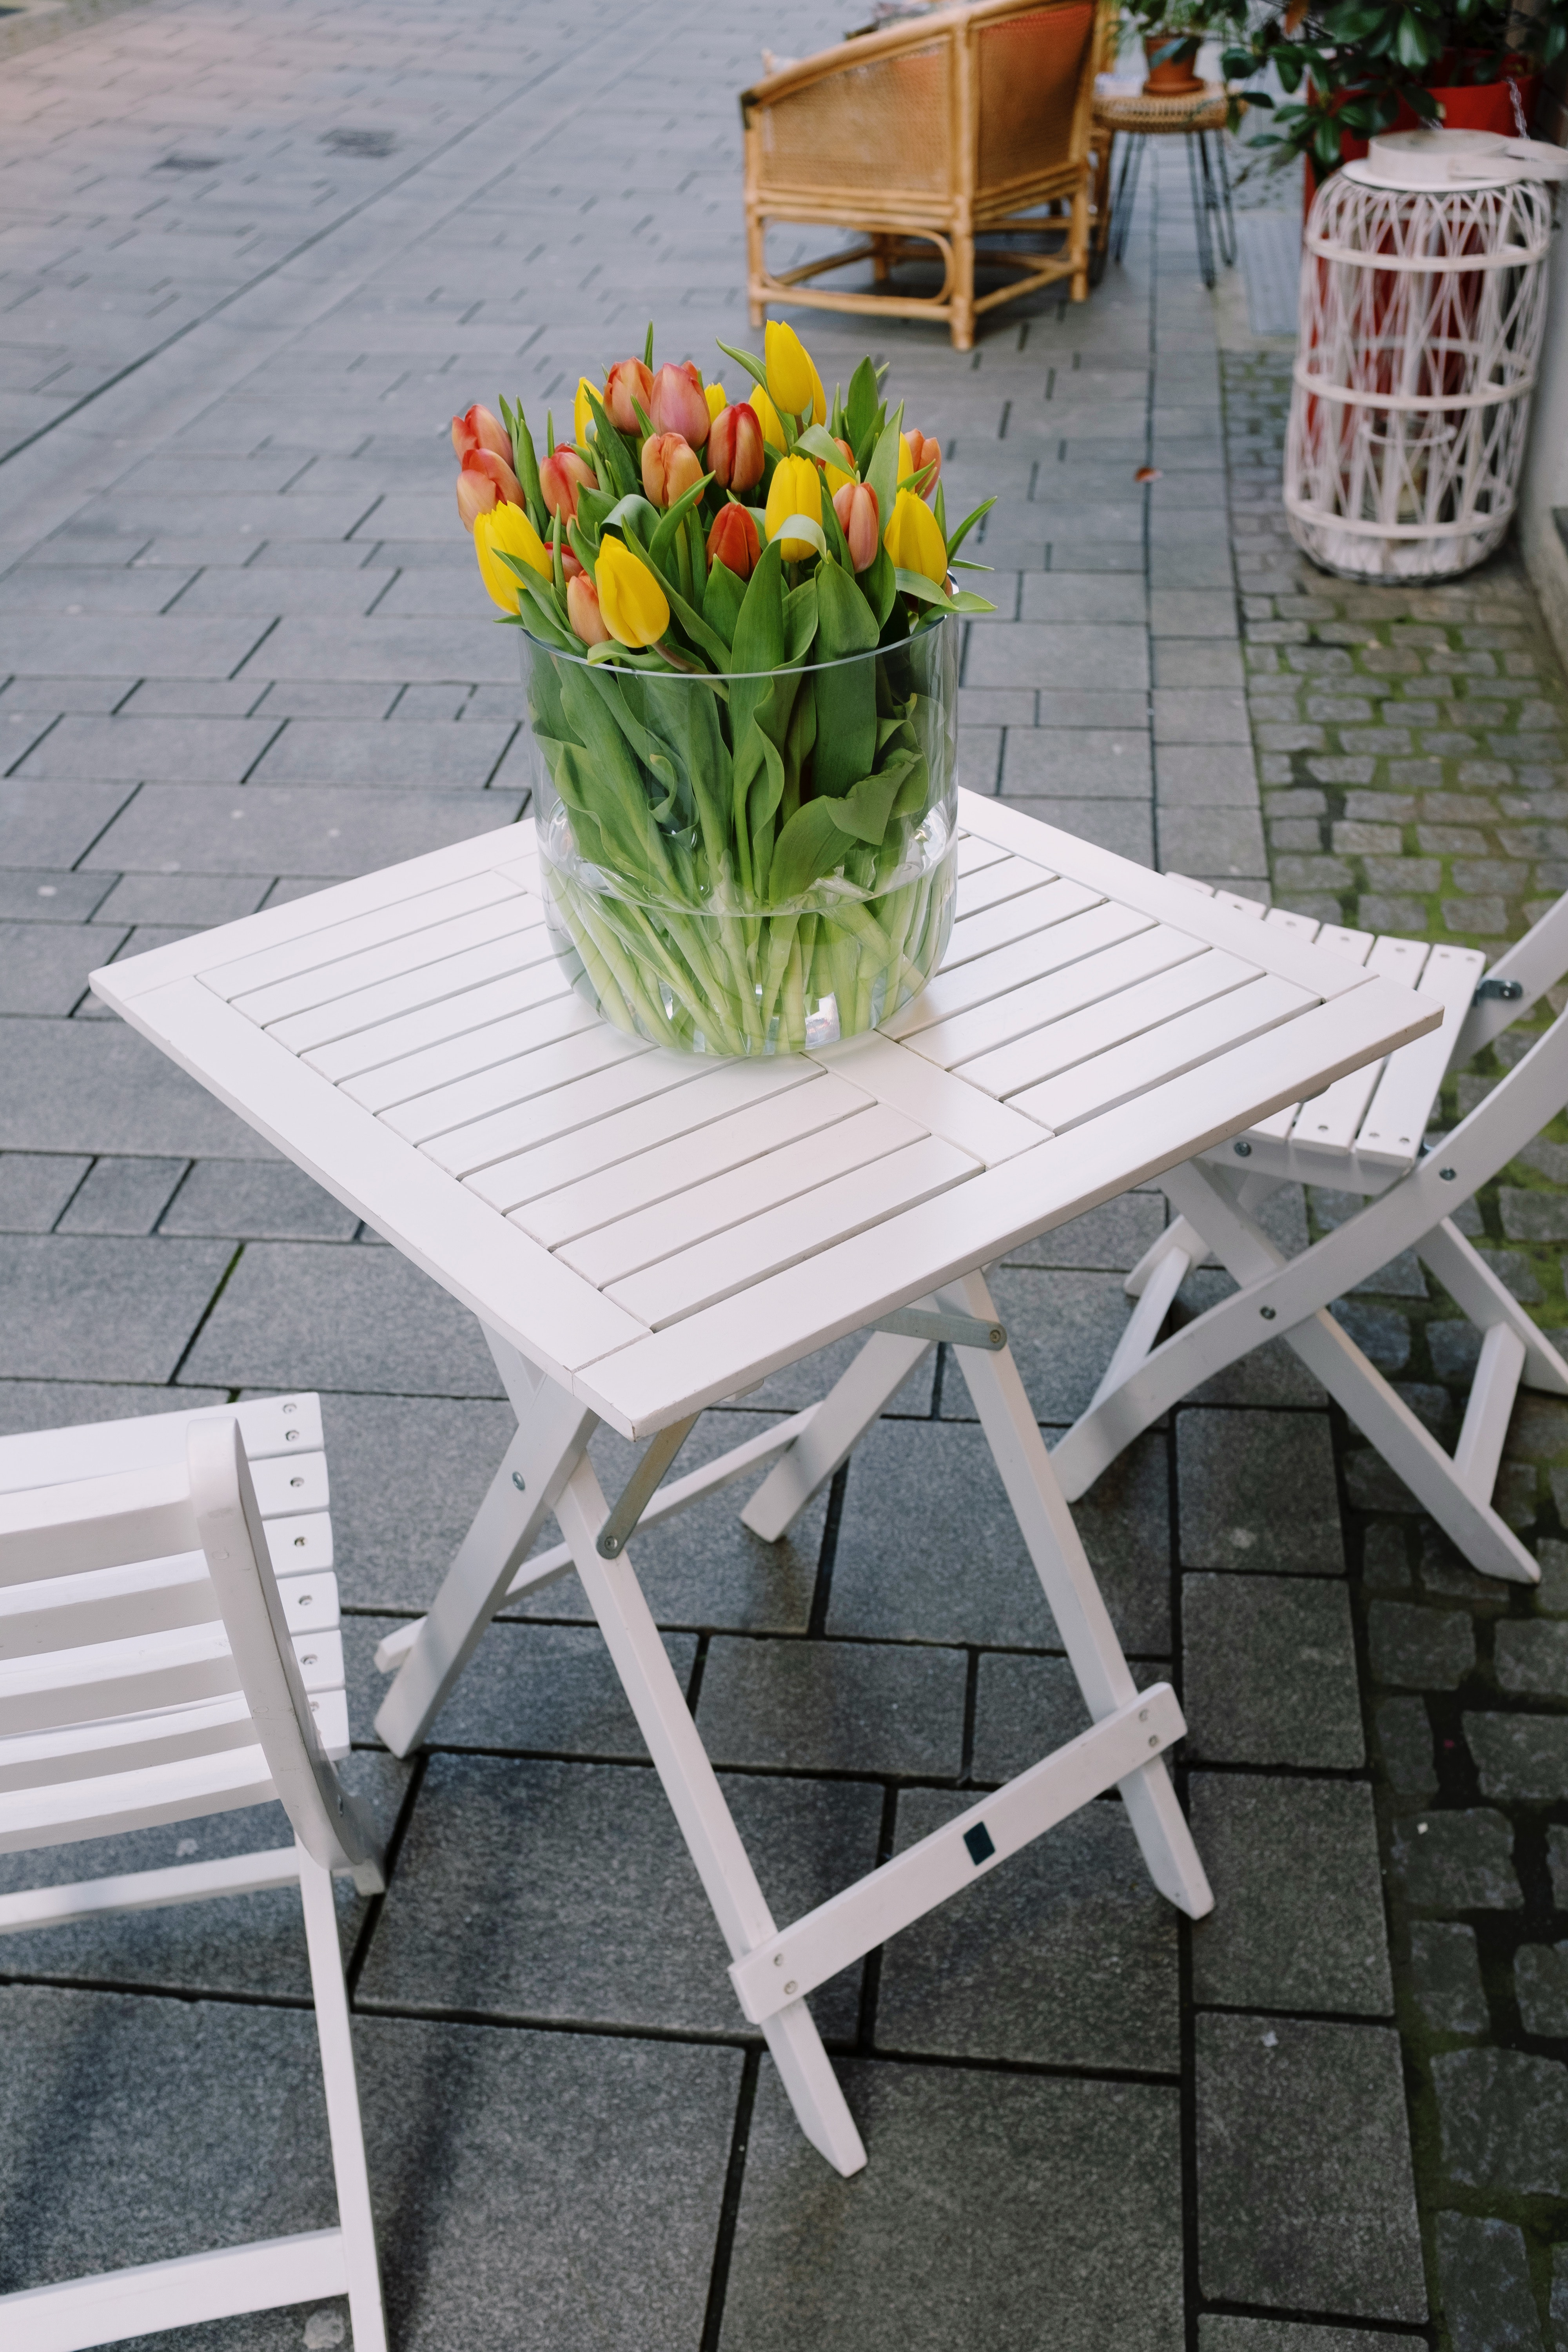 white-wooden-table-with-flowers-in-vase-